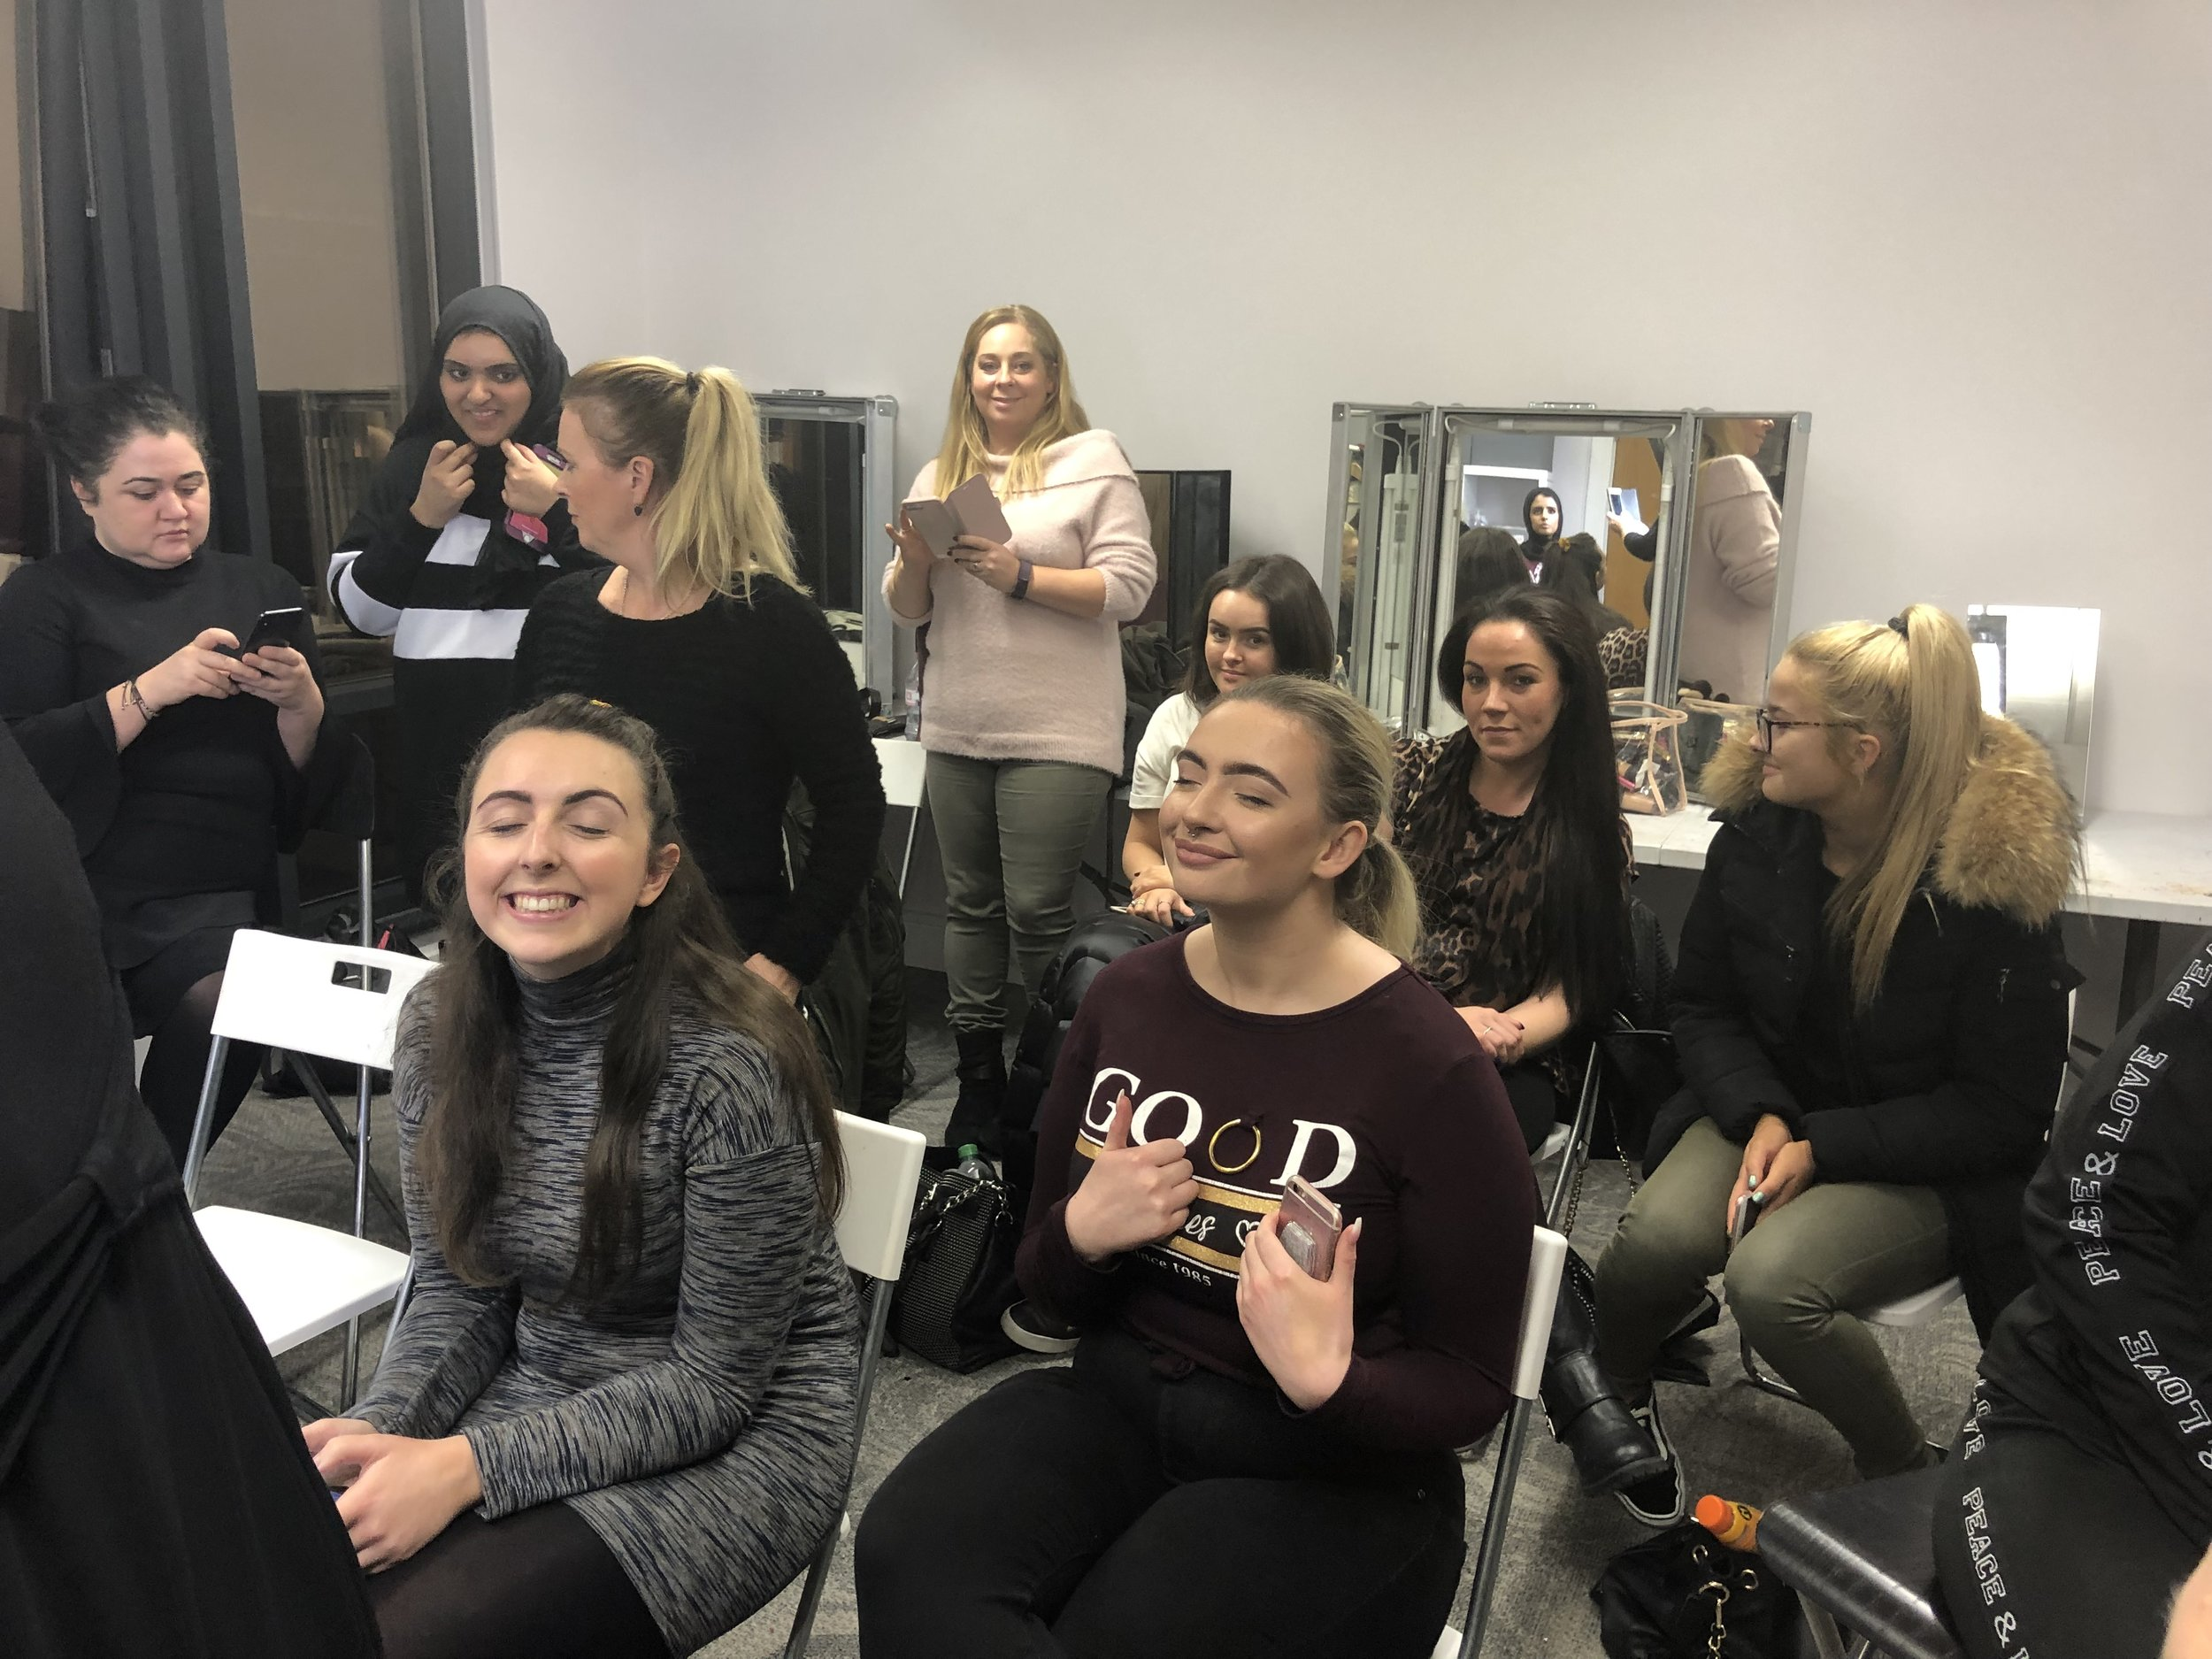 VTCT LEVEL 3 DIPLOMA IN MAKE UP ARTISTRY - COST: £3500.00KIT: £200VENUES:LiverpoolLondonManchesterFunding: Advanced learner loan for the qualification, students will just have to purchase the kit.& Private loan for the qualification and kit available to all areas of the UK.Please click the link to ENROL to sign up and enquire if and what funding is available to you.